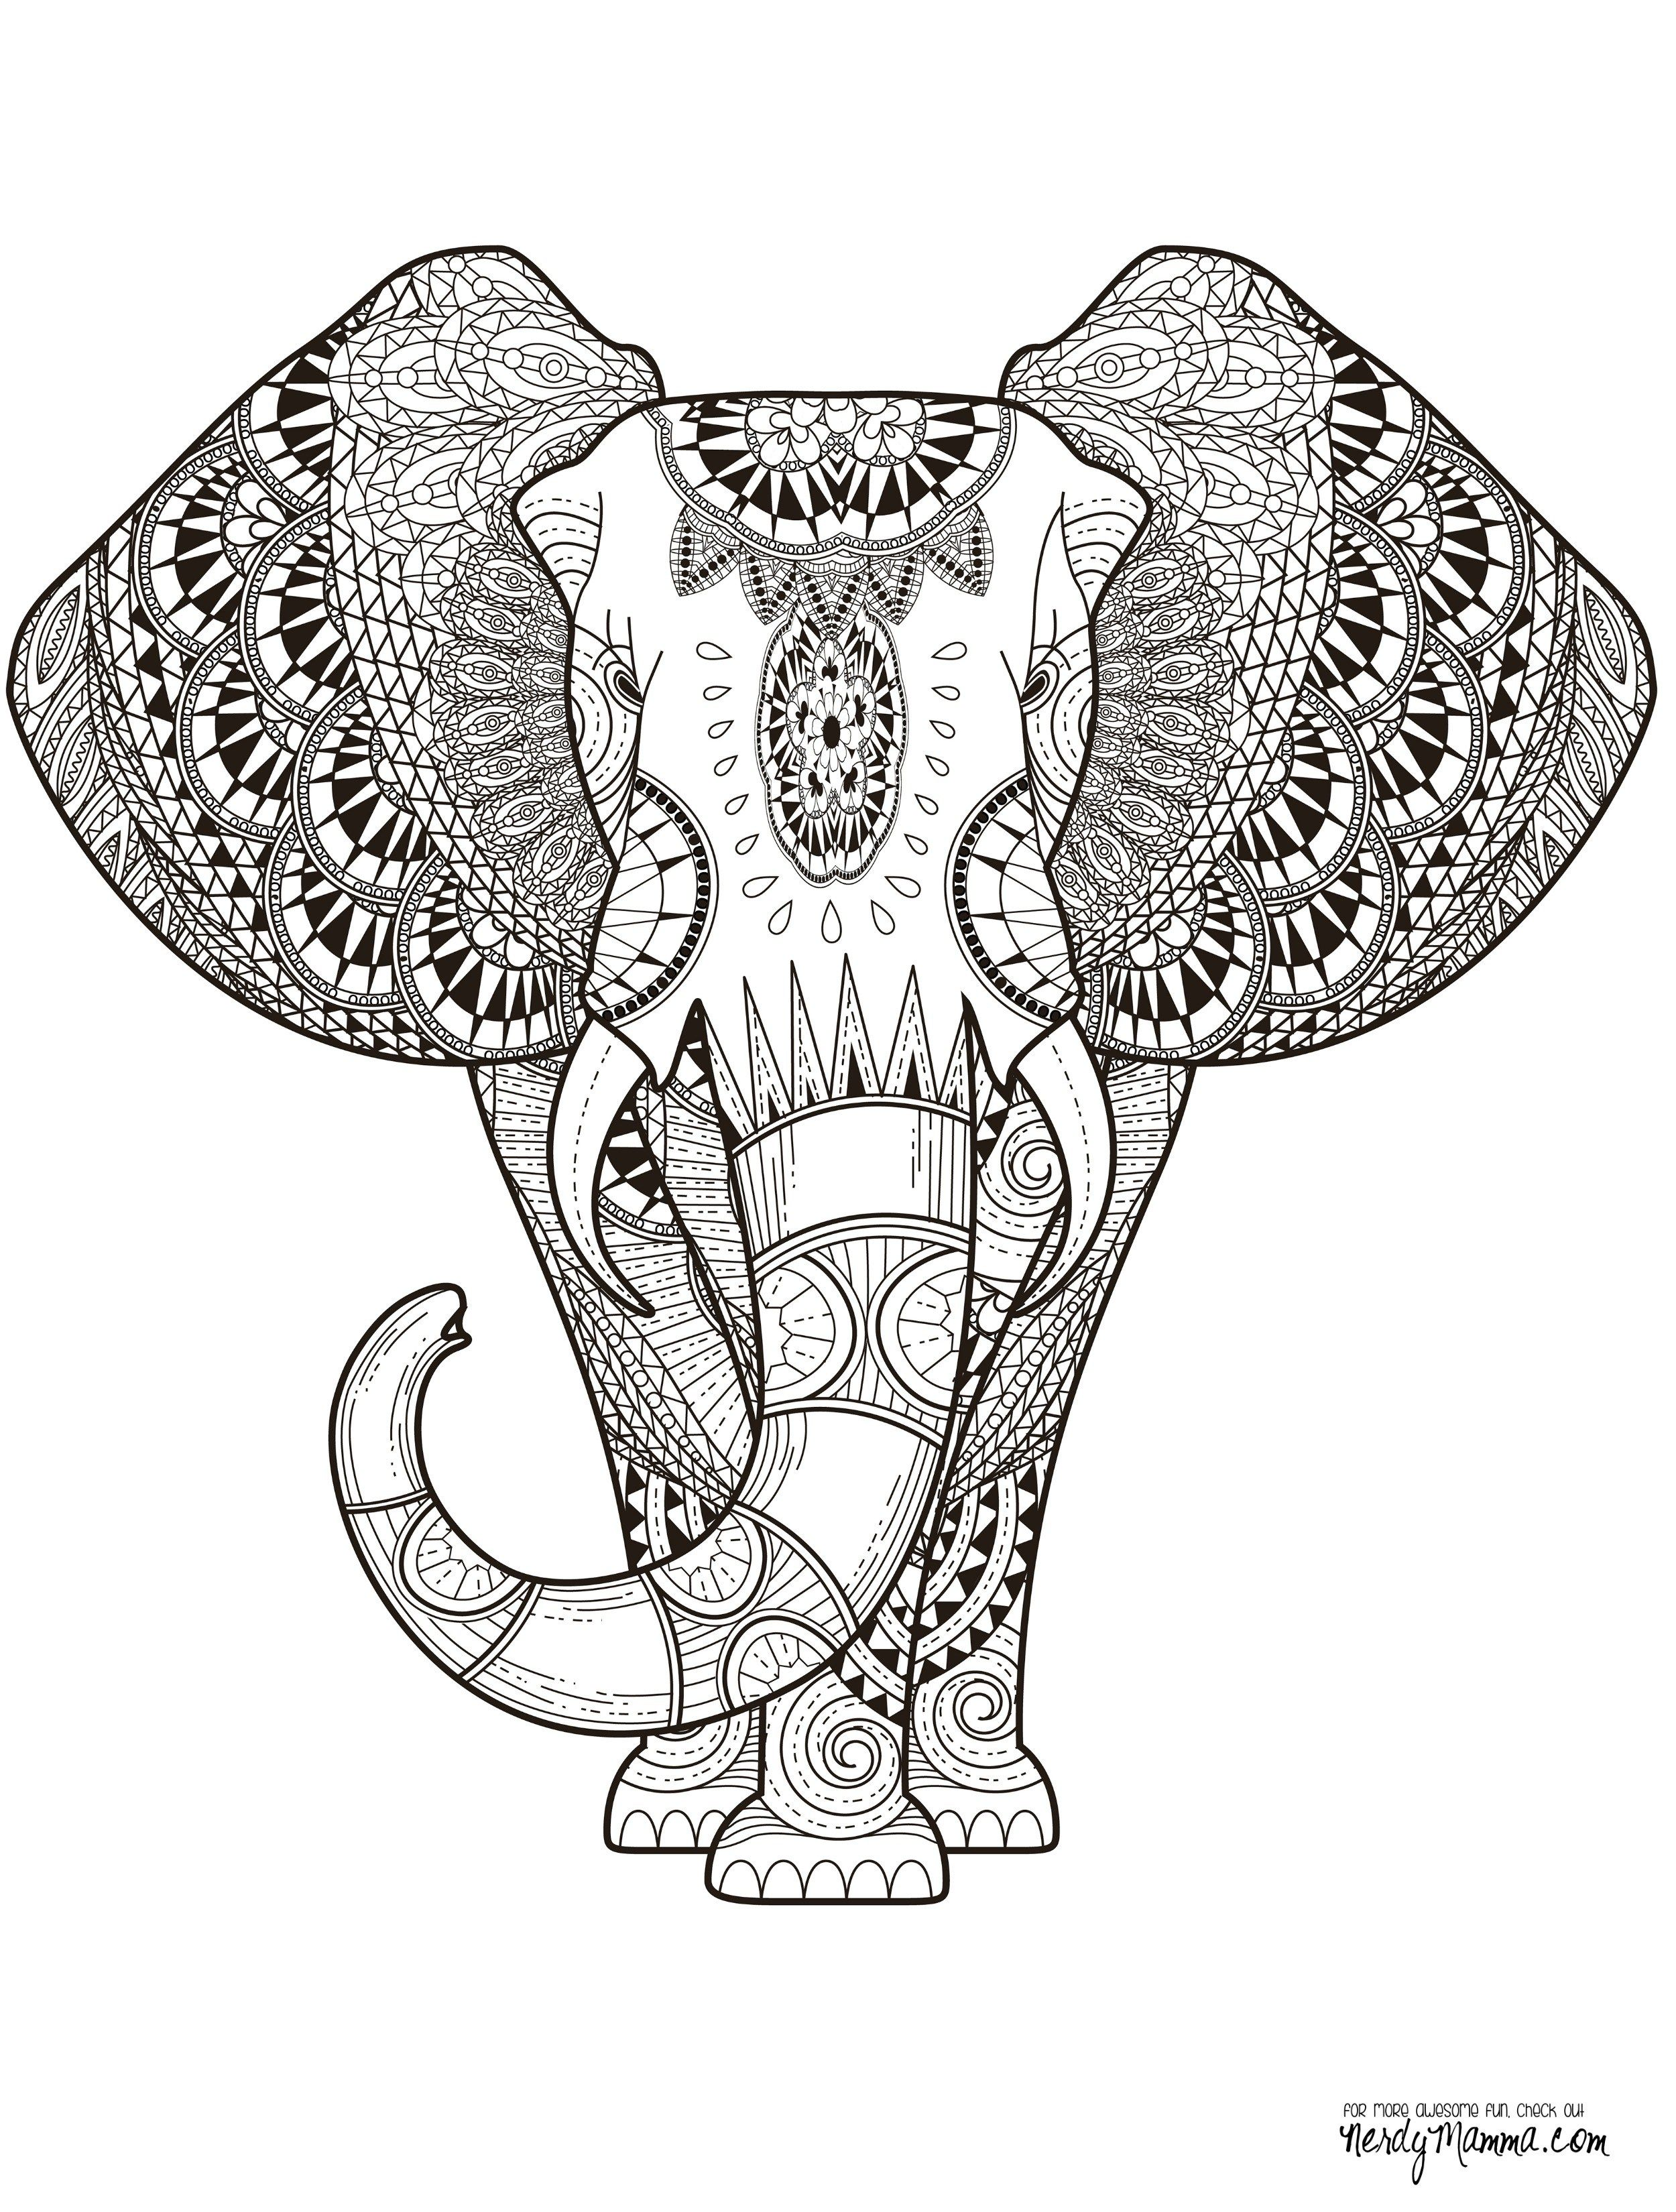 Elephant abstract doodle zentangle paisley coloring pages colouring adult detailed advanced printable kleuren voor volwassenen coloriage pour adulte